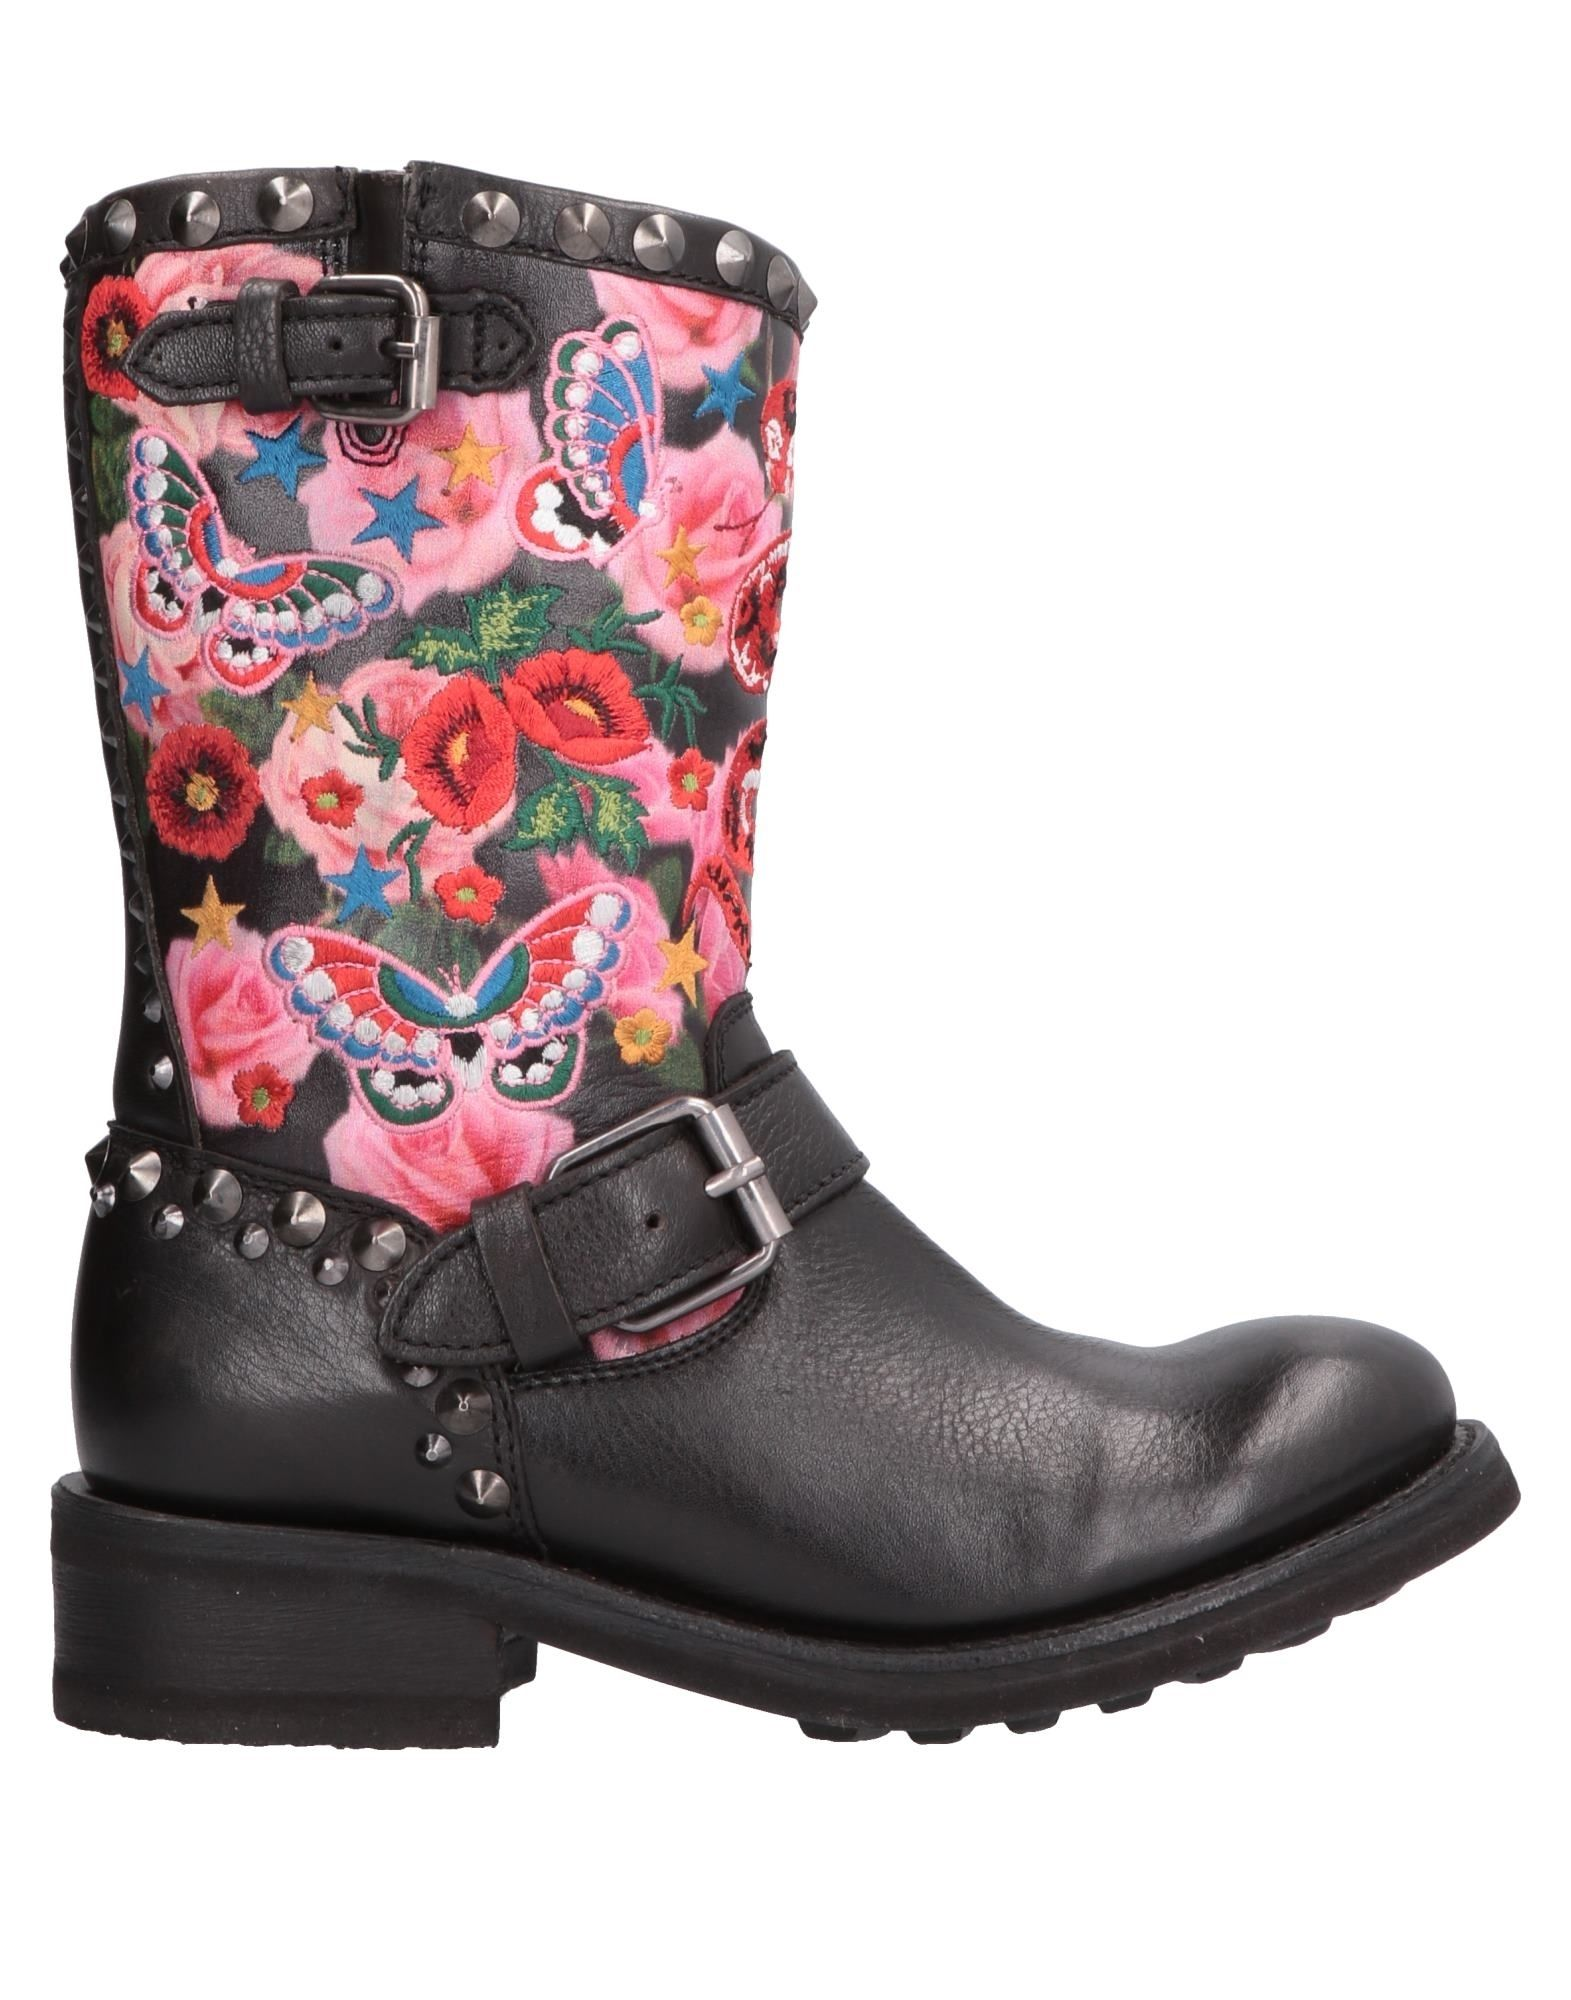 Ash Ankle Boot Boot Ankle - Women Ash Ankle Boots online on  Australia - 11570268DN 936fac